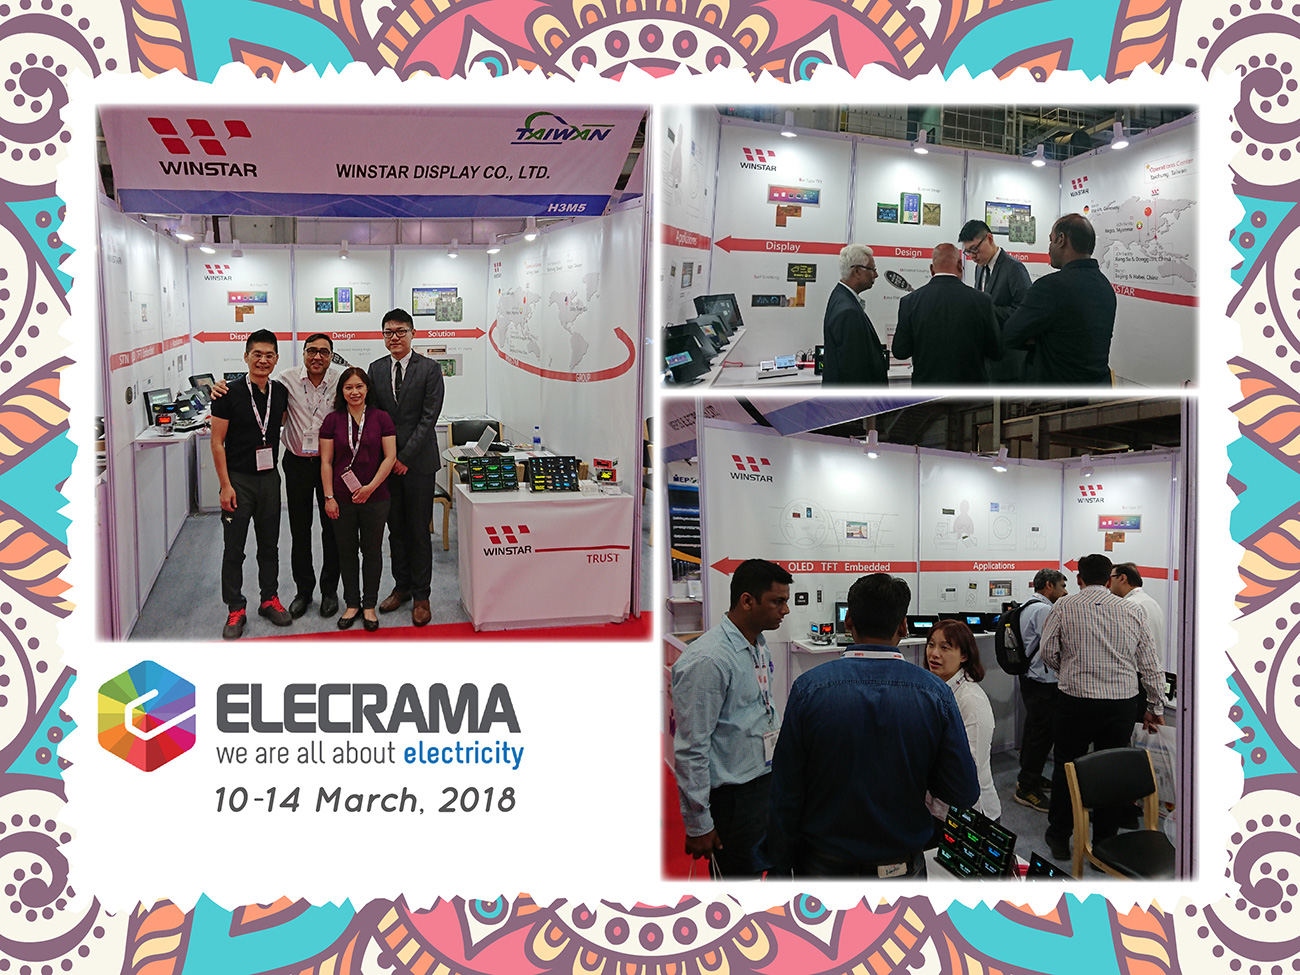 ELECRAMA 2018, India - Exhibition Highlights - Winstar